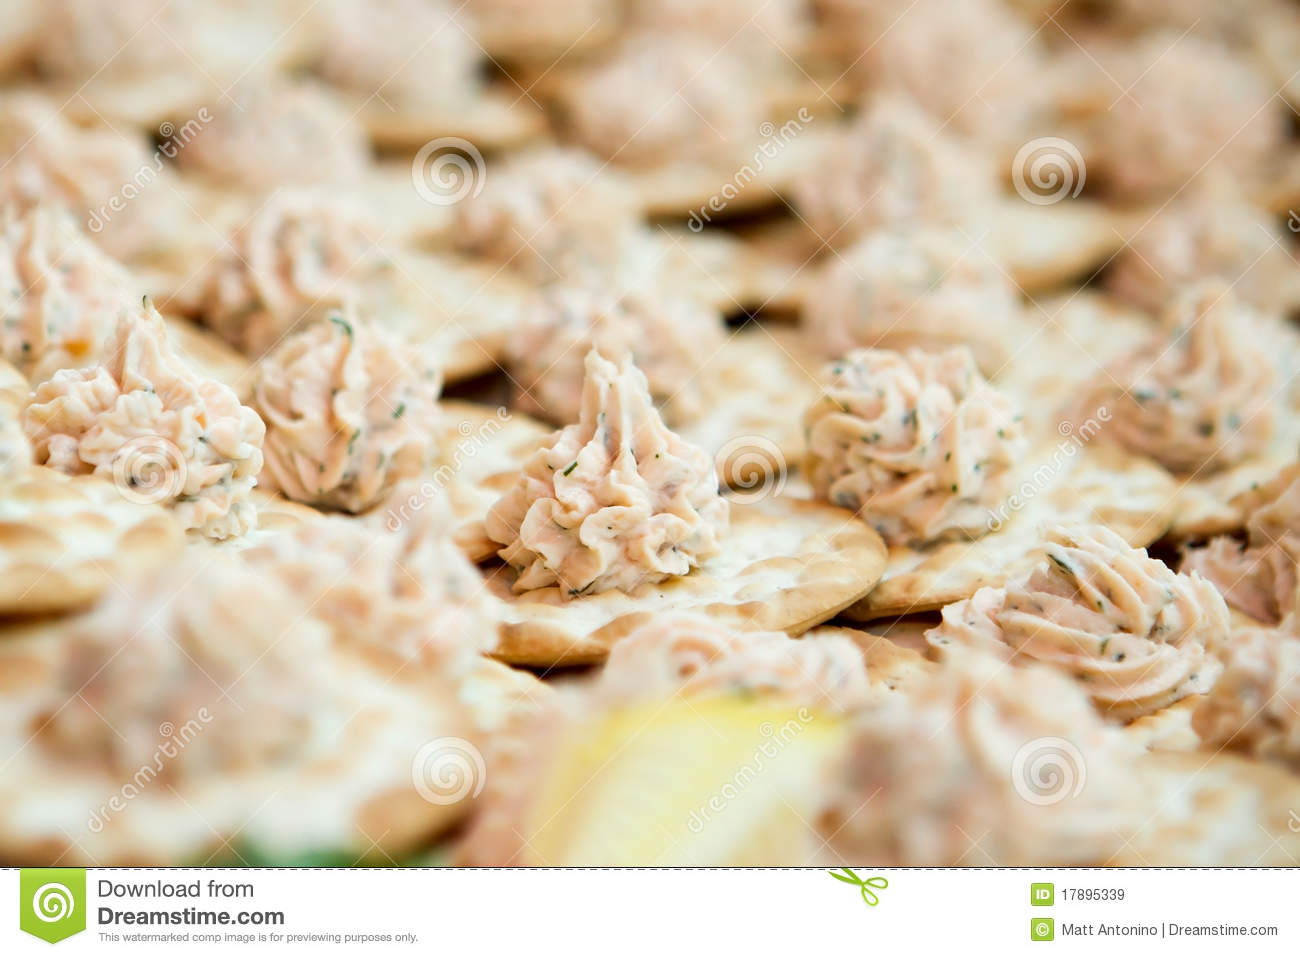 Seafood Dip On Crackers Royalty Free Stock Images   Image  17895339